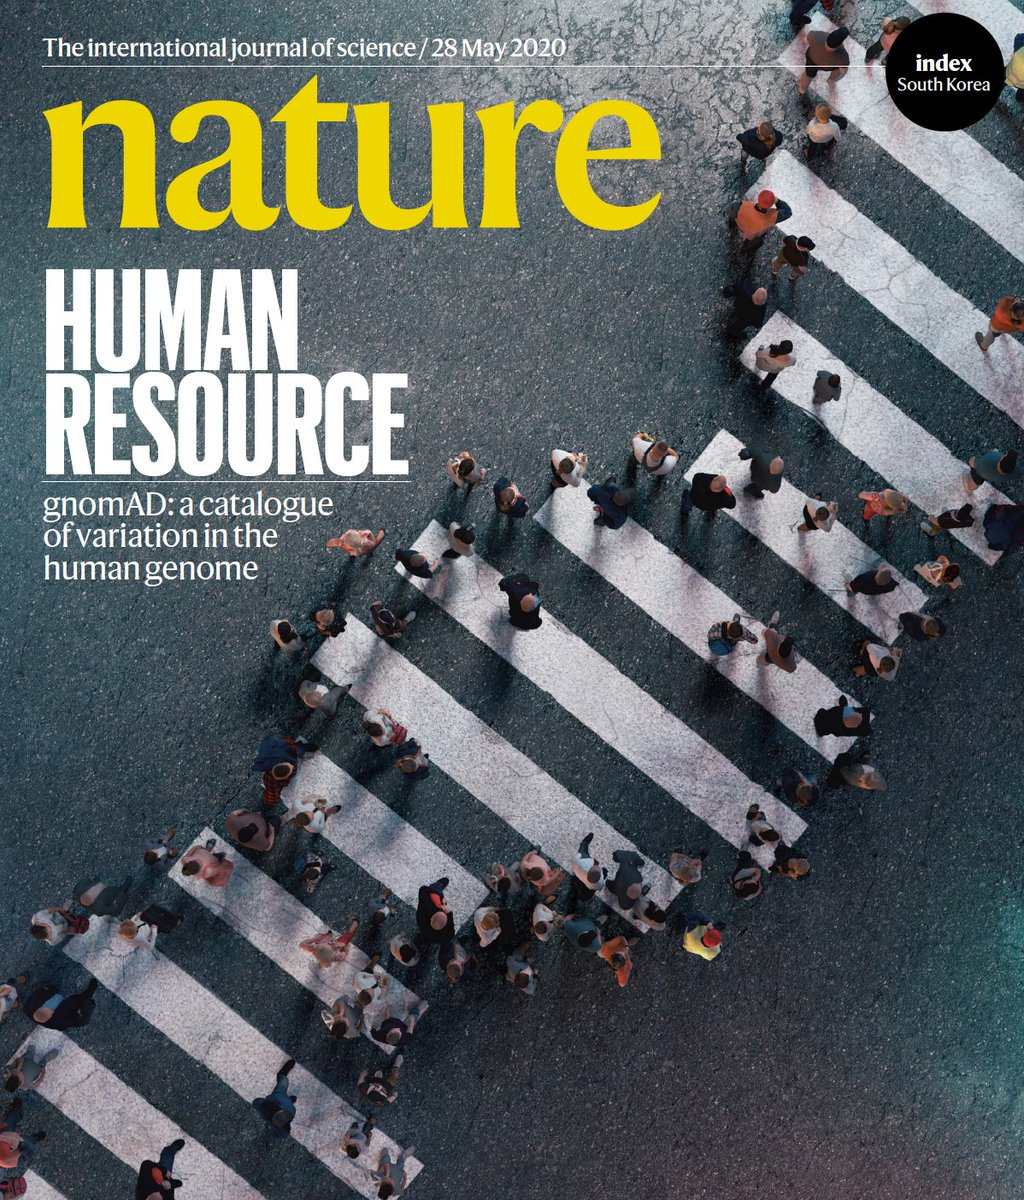 A catalogue of predicted loss-of-function variants from 125K whole exomes & 15K whole genomes from the Genome Aggregation Database reveals the spectrum of mutational constraints that affect these human protein-coding genes - just out in @nature https://t.co/xqxIBFoUdi #gnomAD https://t.co/Jt8xPq5F7f